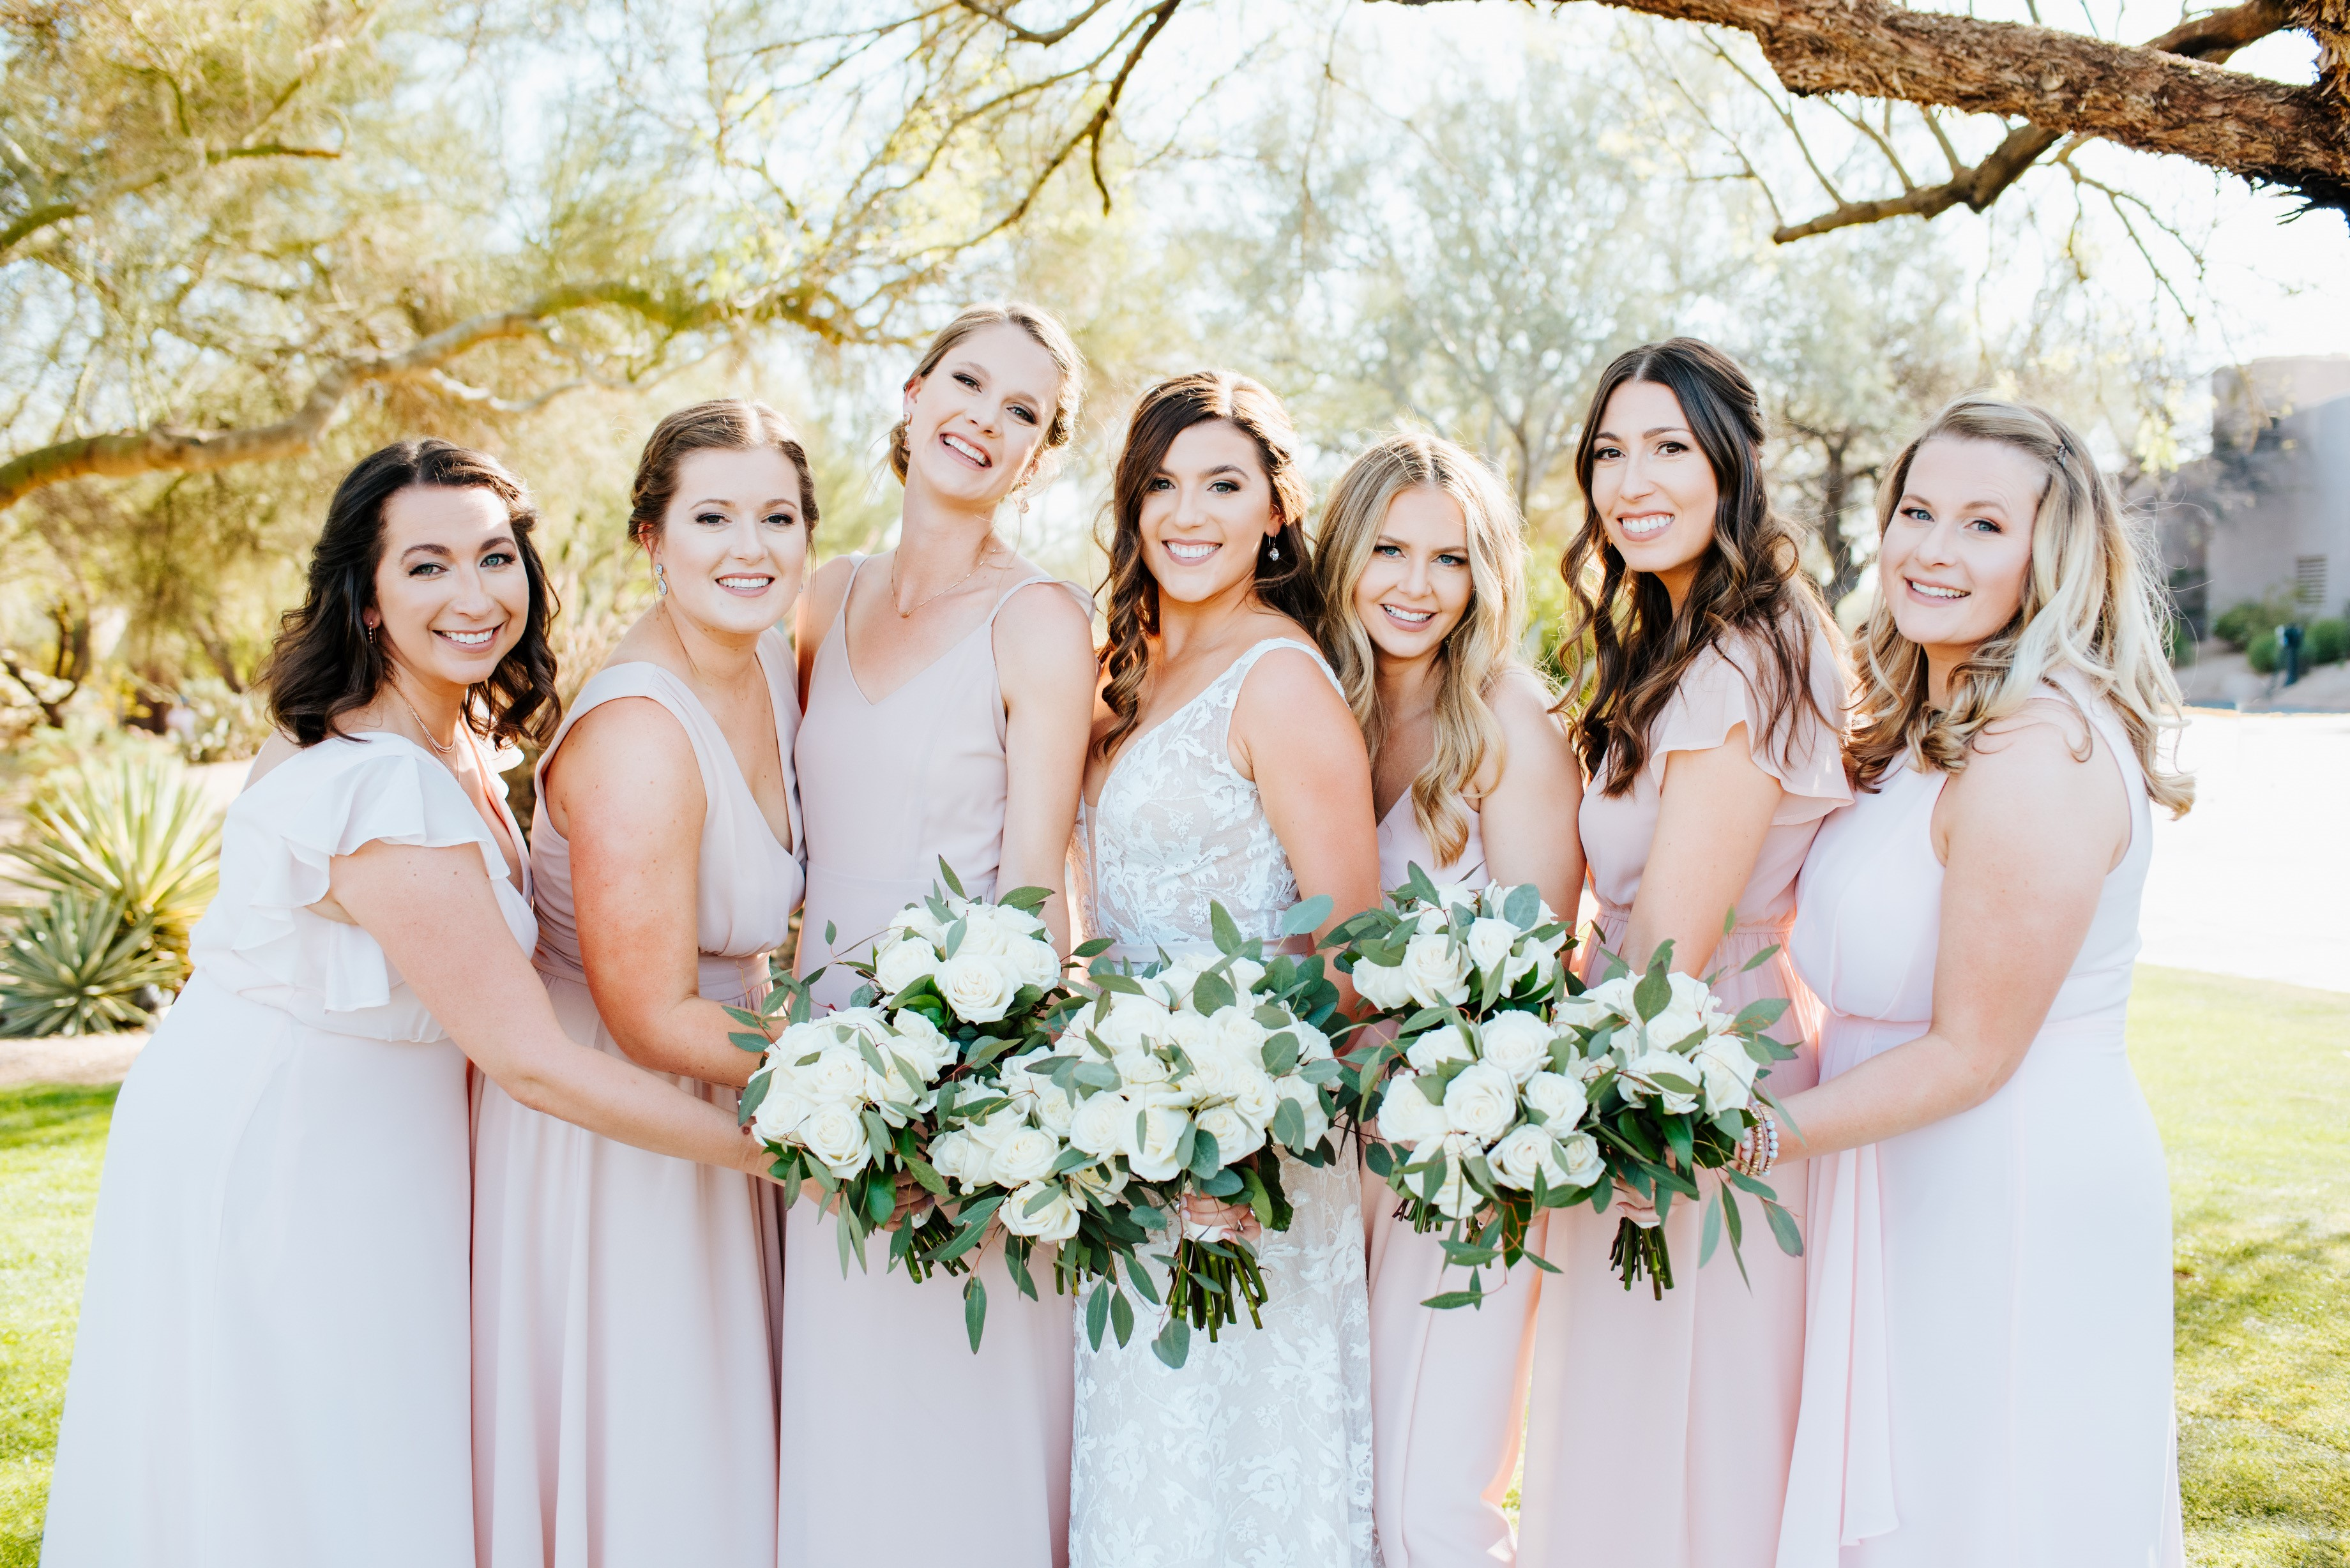 bridesmaids posing with bouquets held together